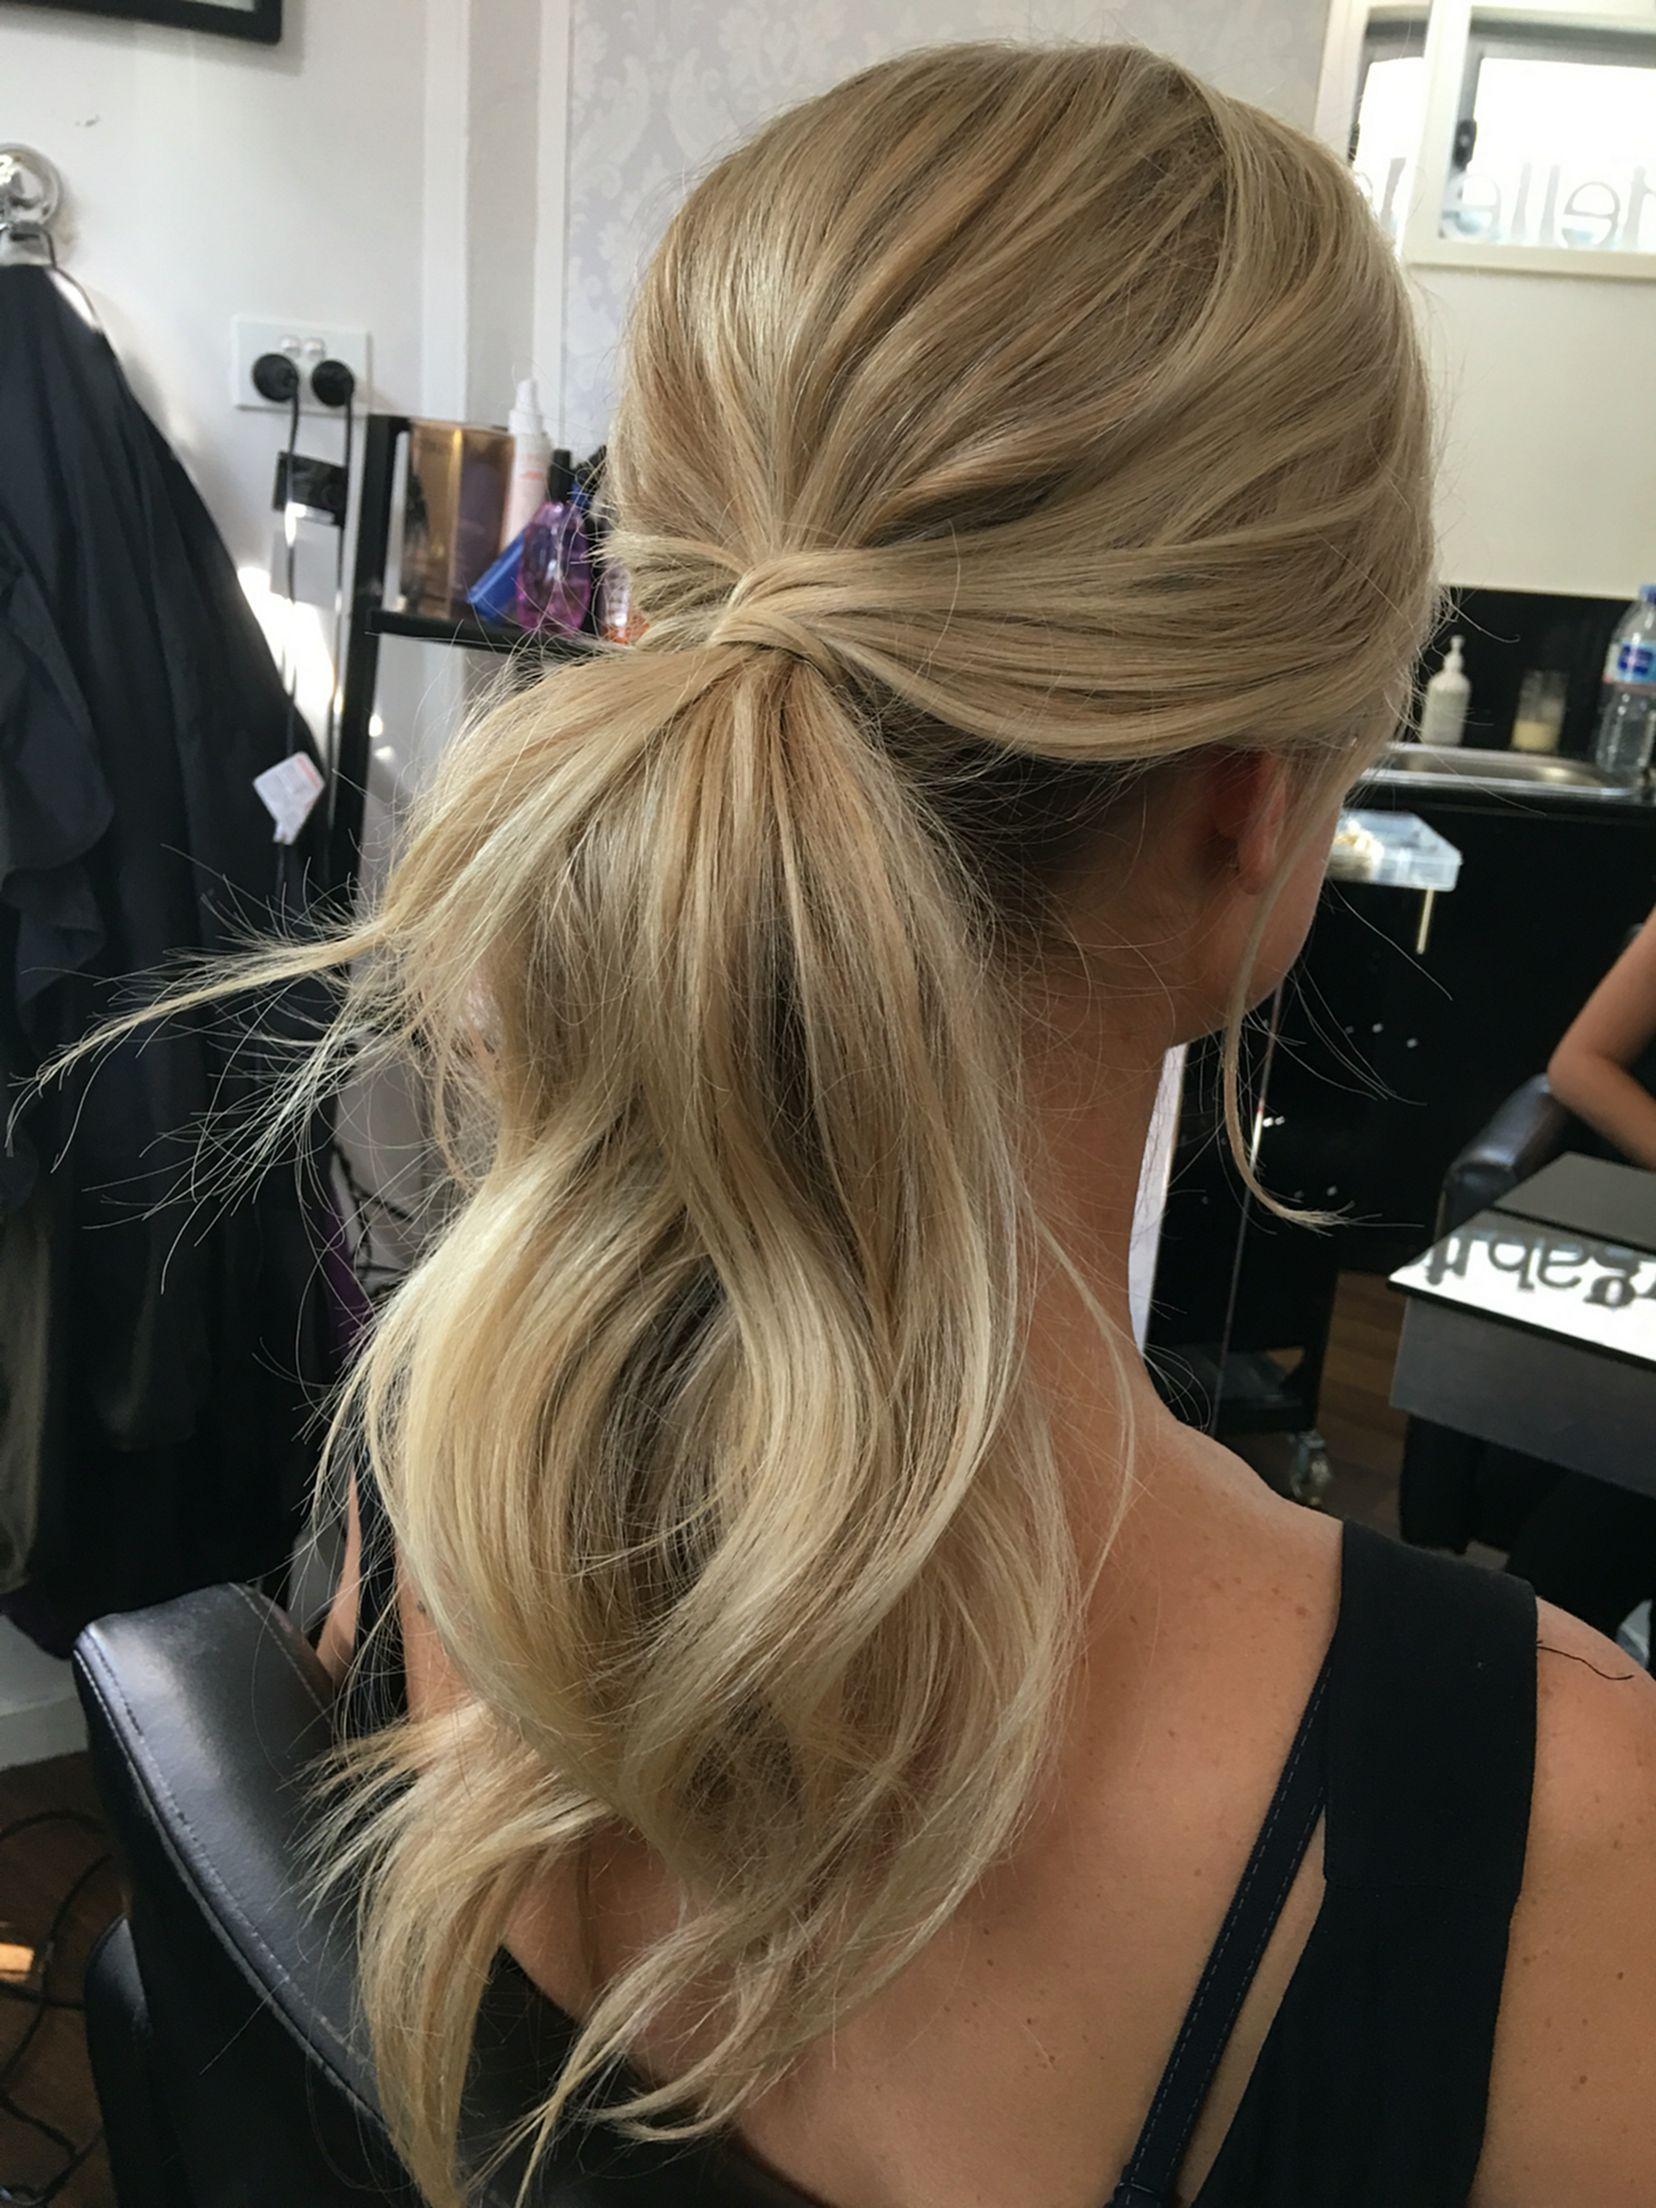 Pin by heather schauder on style pinterest hair hair styles and